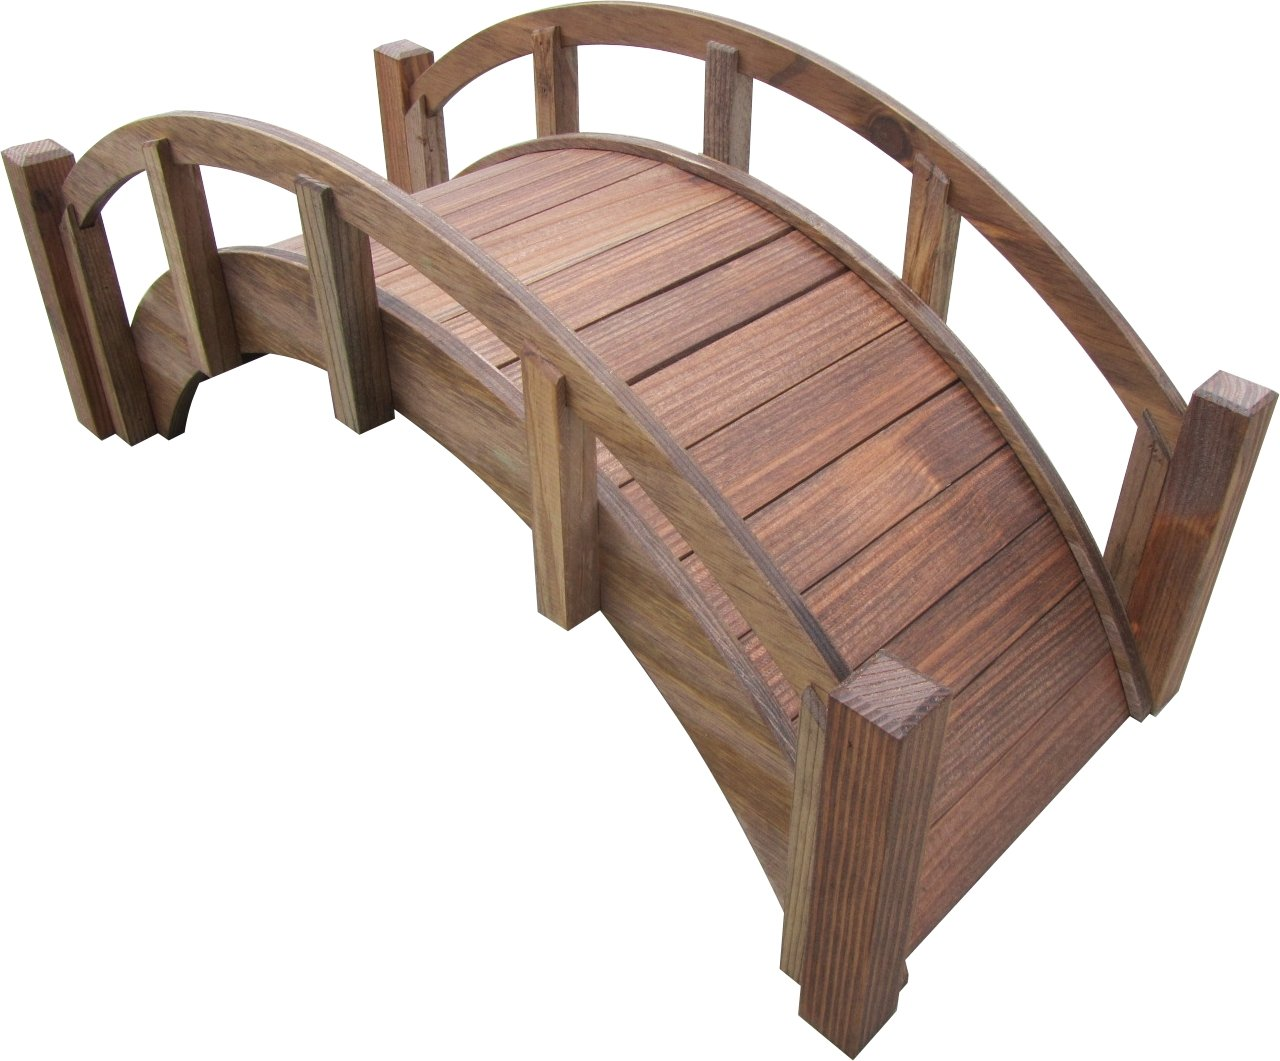 SamsGazebos Miniature Japanese Wood Garden Bridge, Treated, Assembled, 25'' Long X 11'' Tall X 11-1/2'' Wide, Made in USA by SamsGazebos